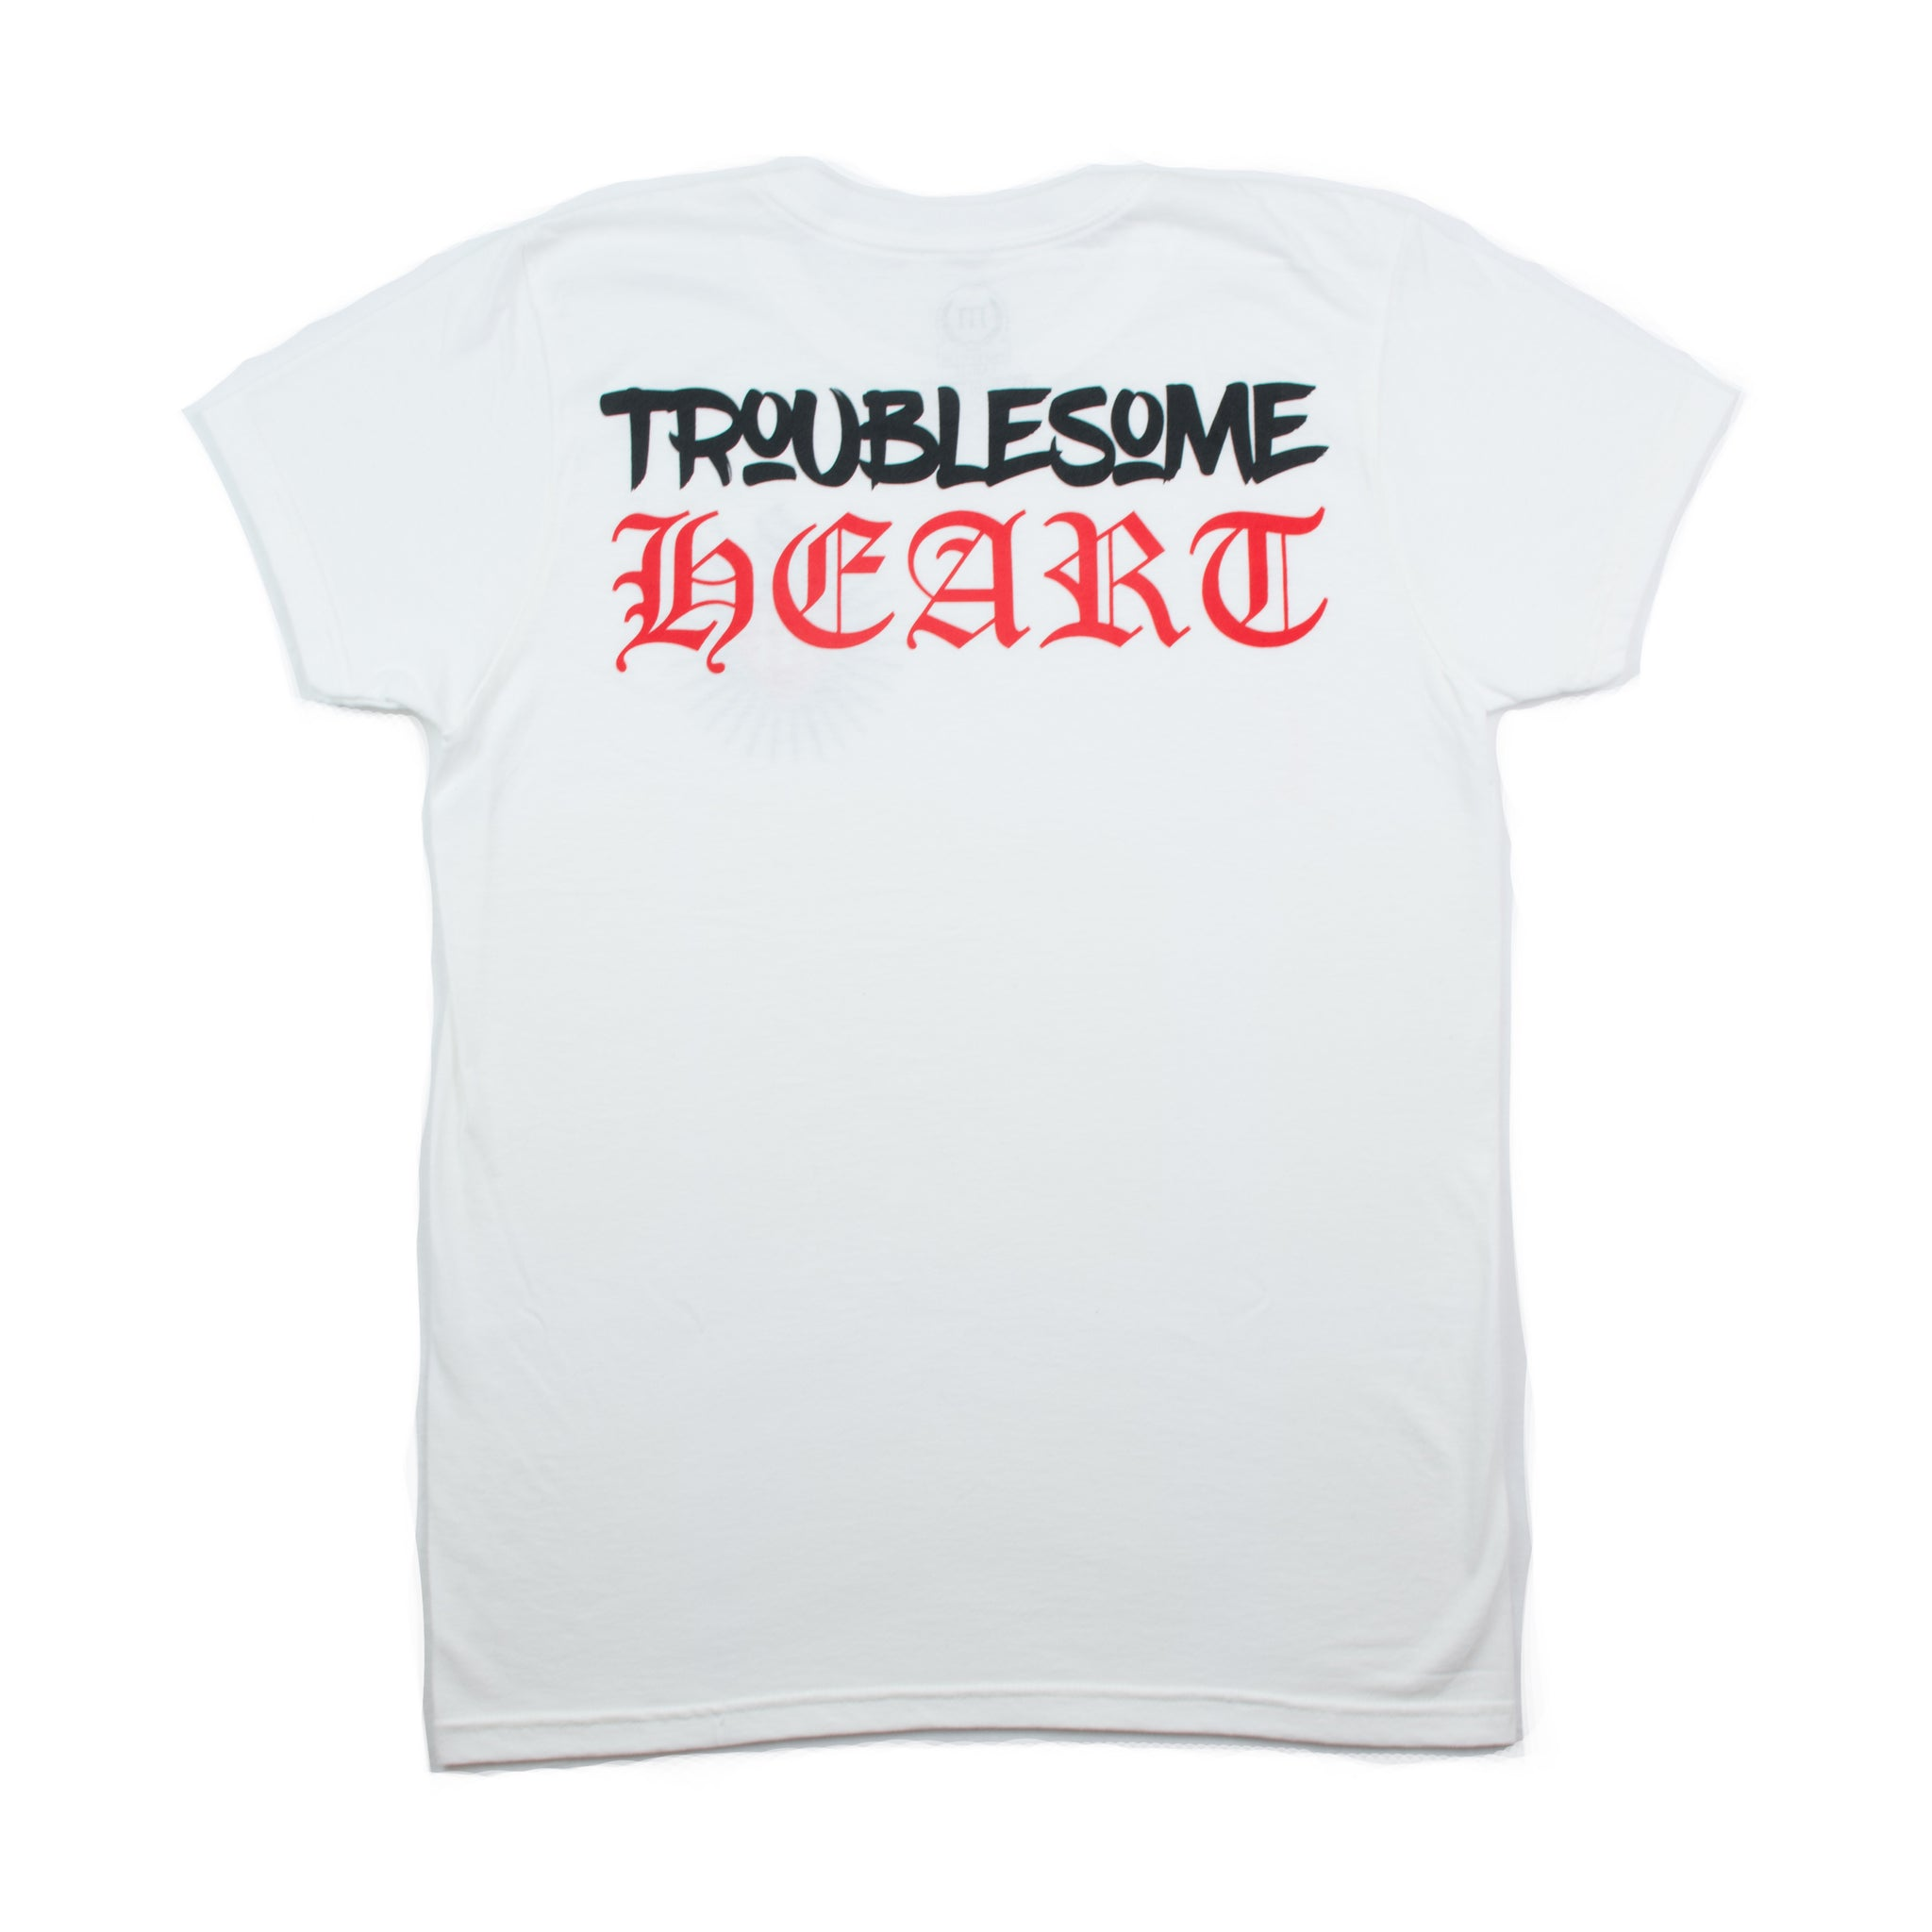 Troublesome Heart T Shirt